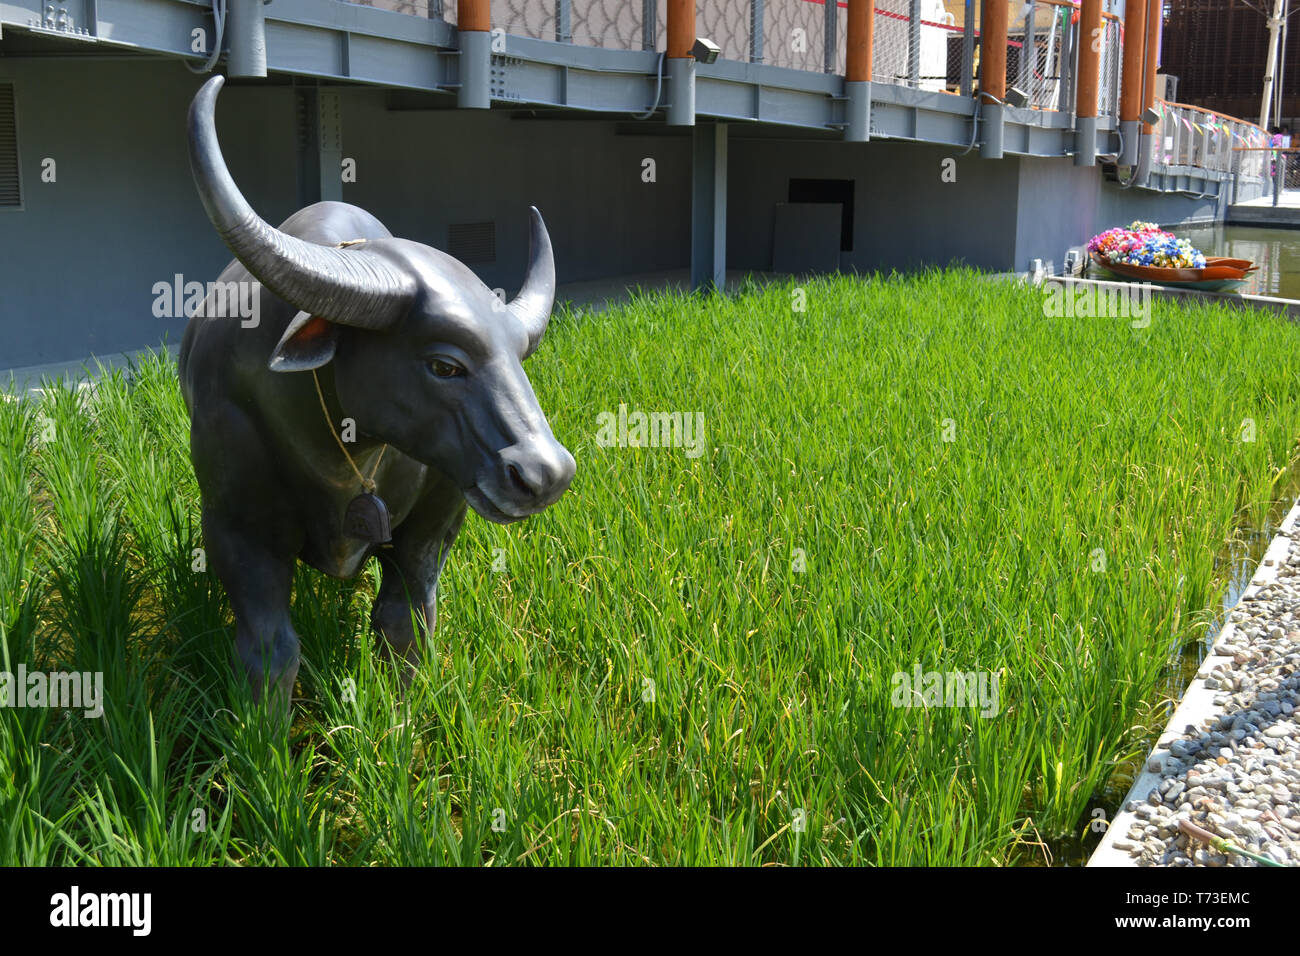 Milan/Italy - June 30, 2015: View to a green rice camp with sculpture of big horns ox standing on it at the Thailand pavilion of the EXPO Milano 2015. - Stock Image